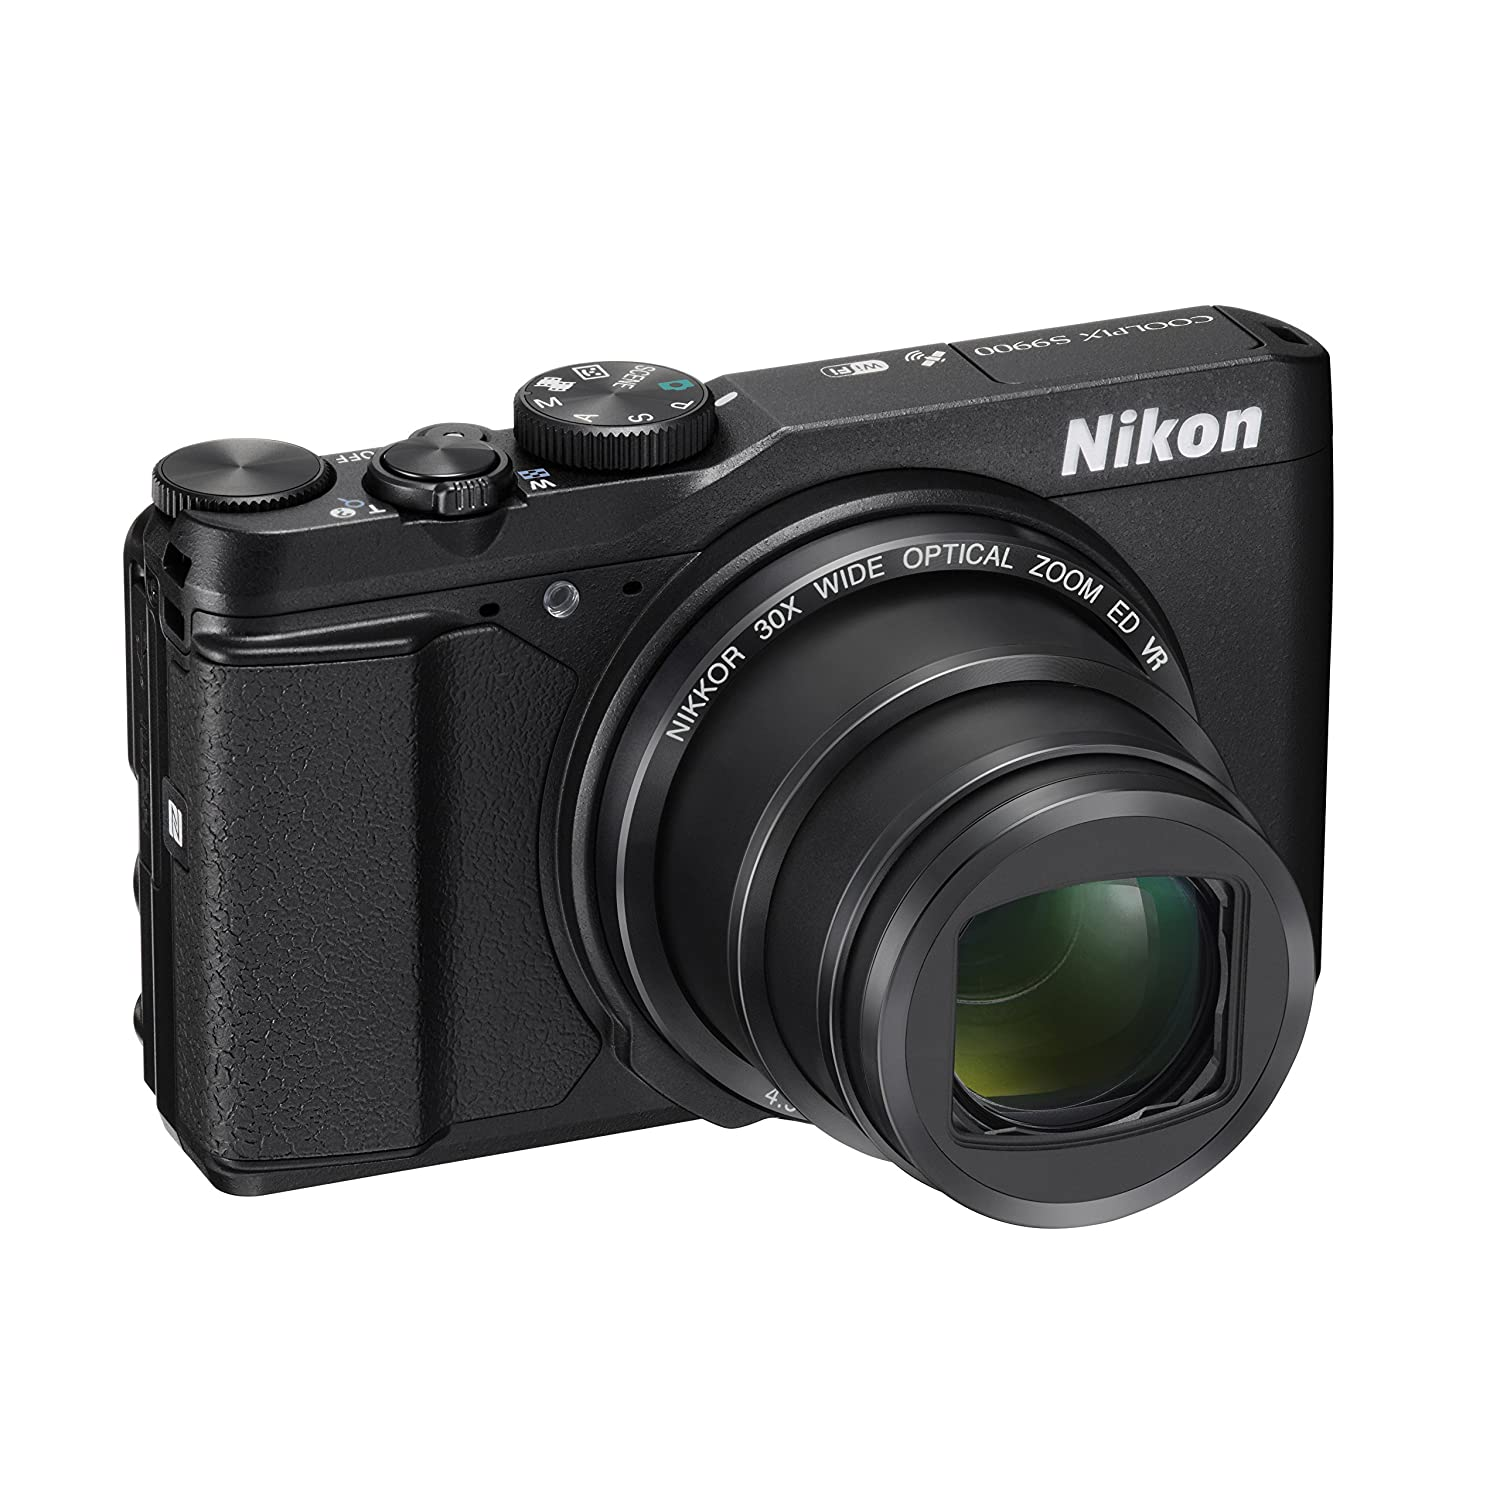 NIKON COOLPIX S9900 CAMERA DRIVERS FOR PC